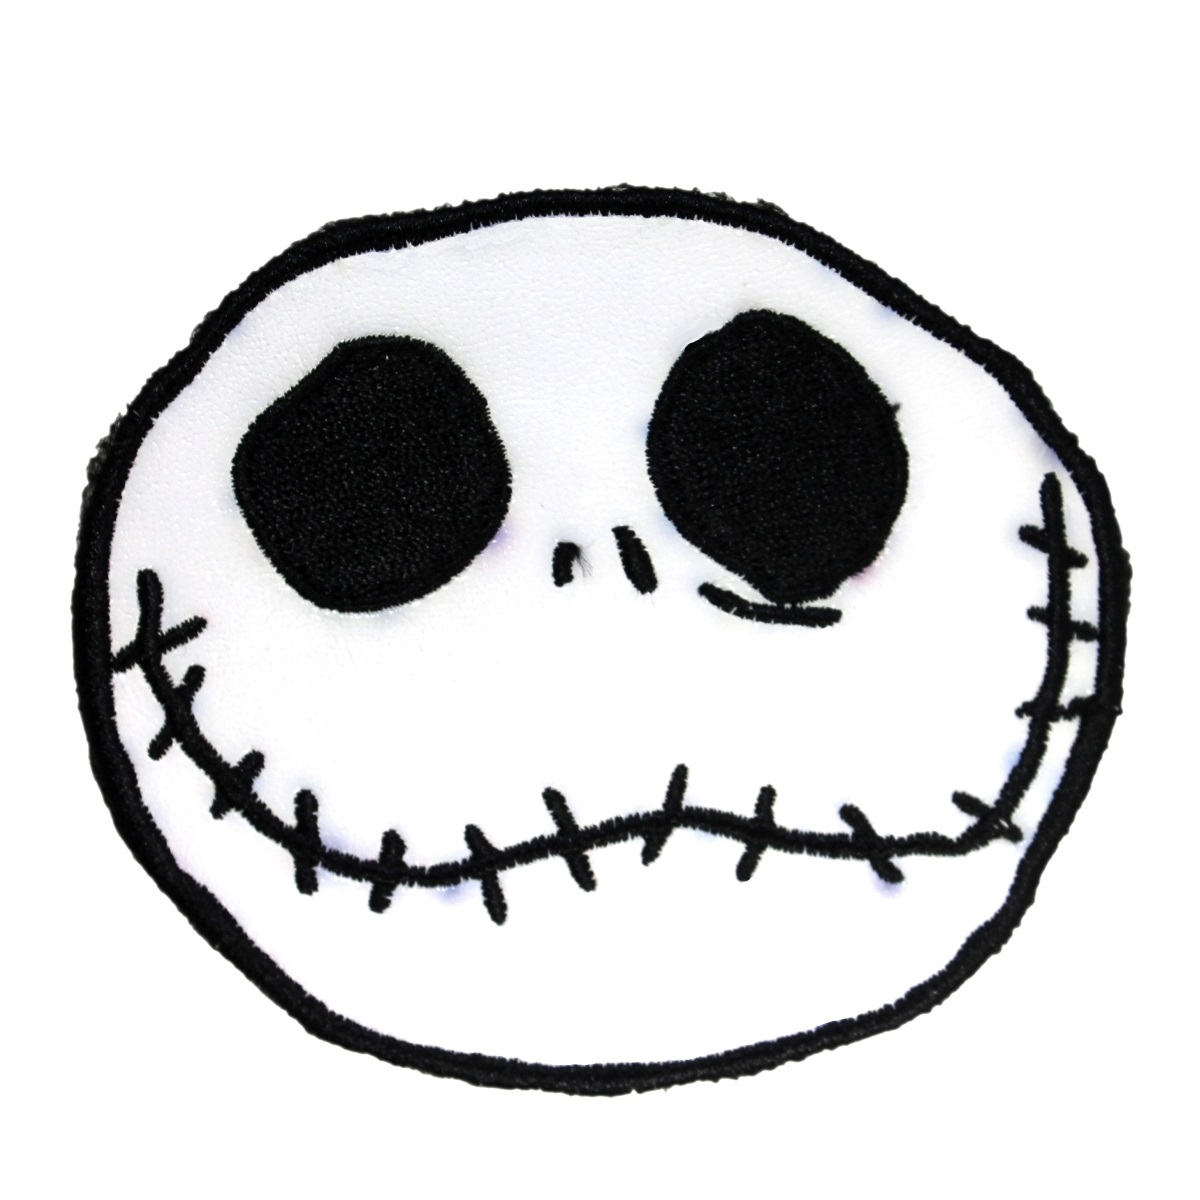 Pleather Jack Skellington Head Nightmare Before Christmas Disney Iron-On PVC Patch